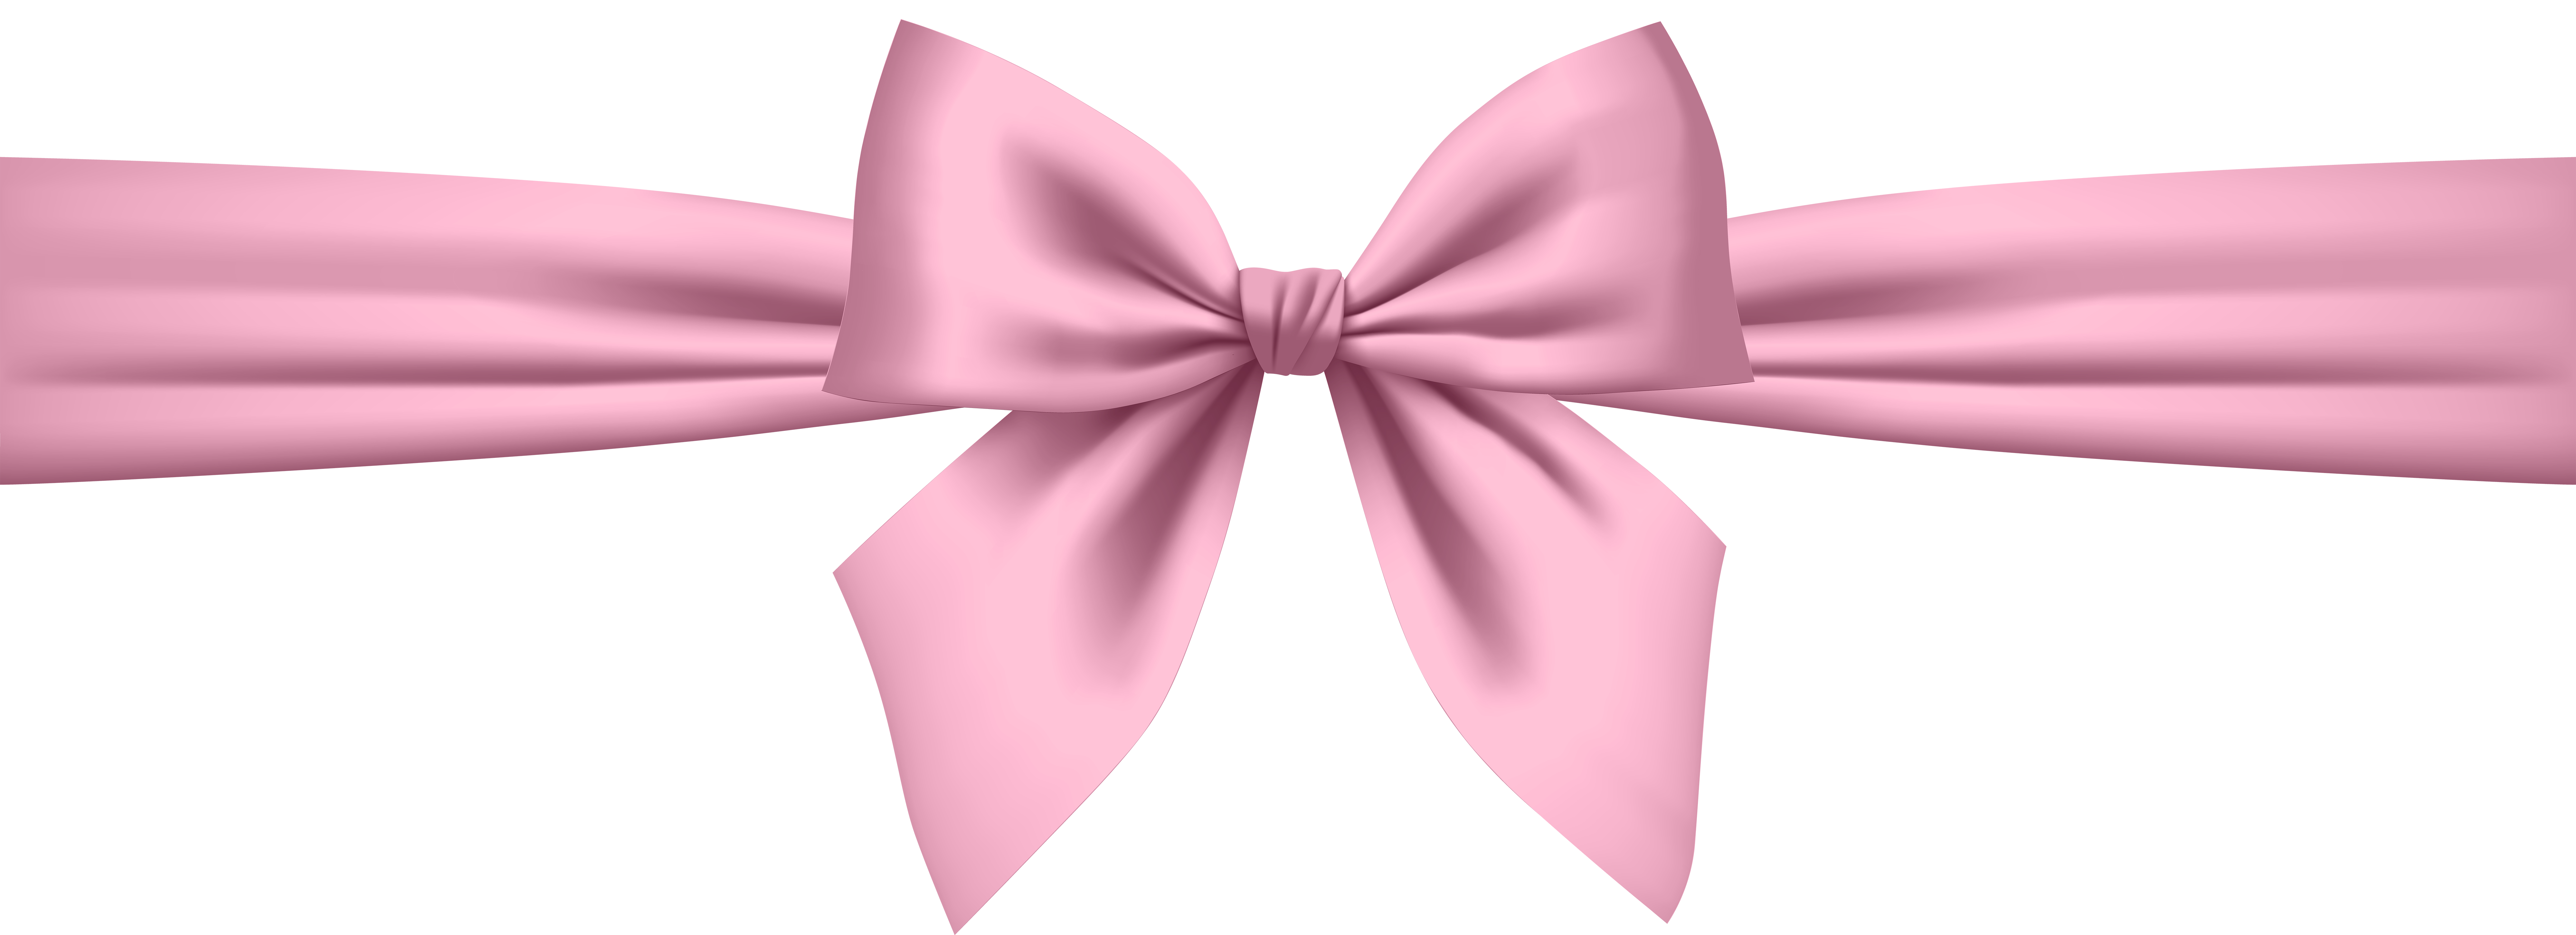 Soft Pink Bow Transparent Png Clip Art Gallery